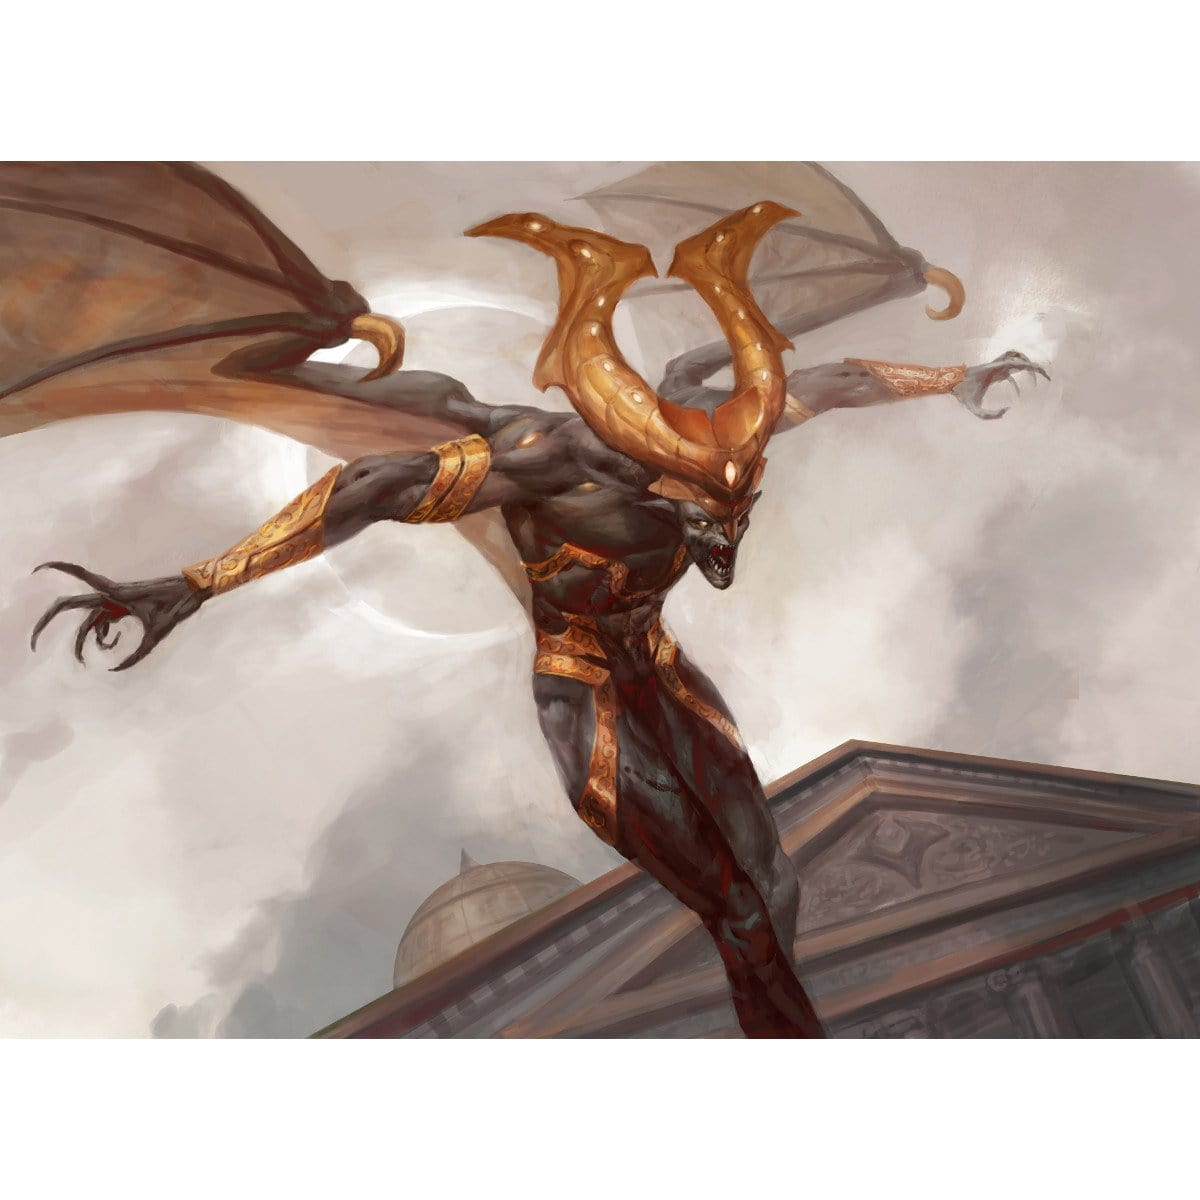 Eater of Hope Print - Print - Original Magic Art - Accessories for Magic the Gathering and other card games